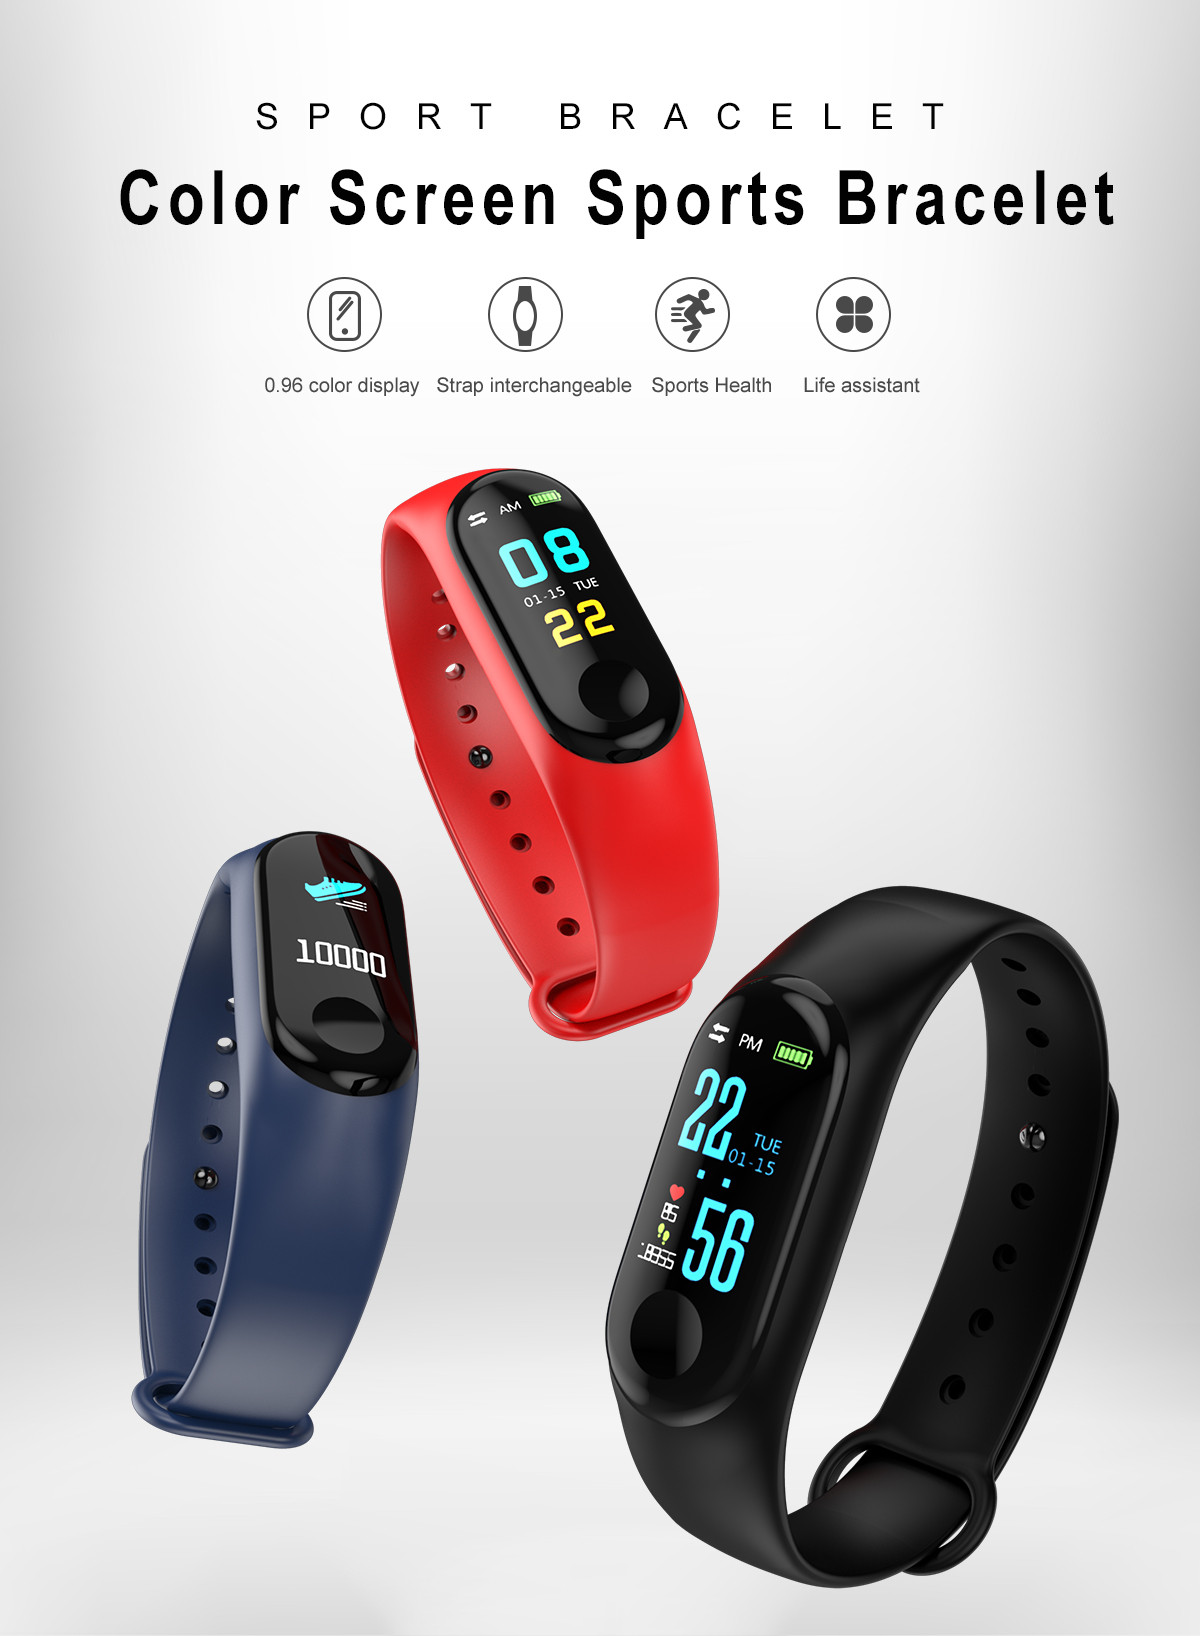 M3 USB style Smart Wristband Bracelet Charge by Usb Waterproof Bluetooth Touch Screen LED Message Heart Rate Time Smart watchM3 USB style Smart Wristband Bracelet Charge by Usb Waterproof Bluetooth Touch Screen LED Message Heart Rate Time Smart watch